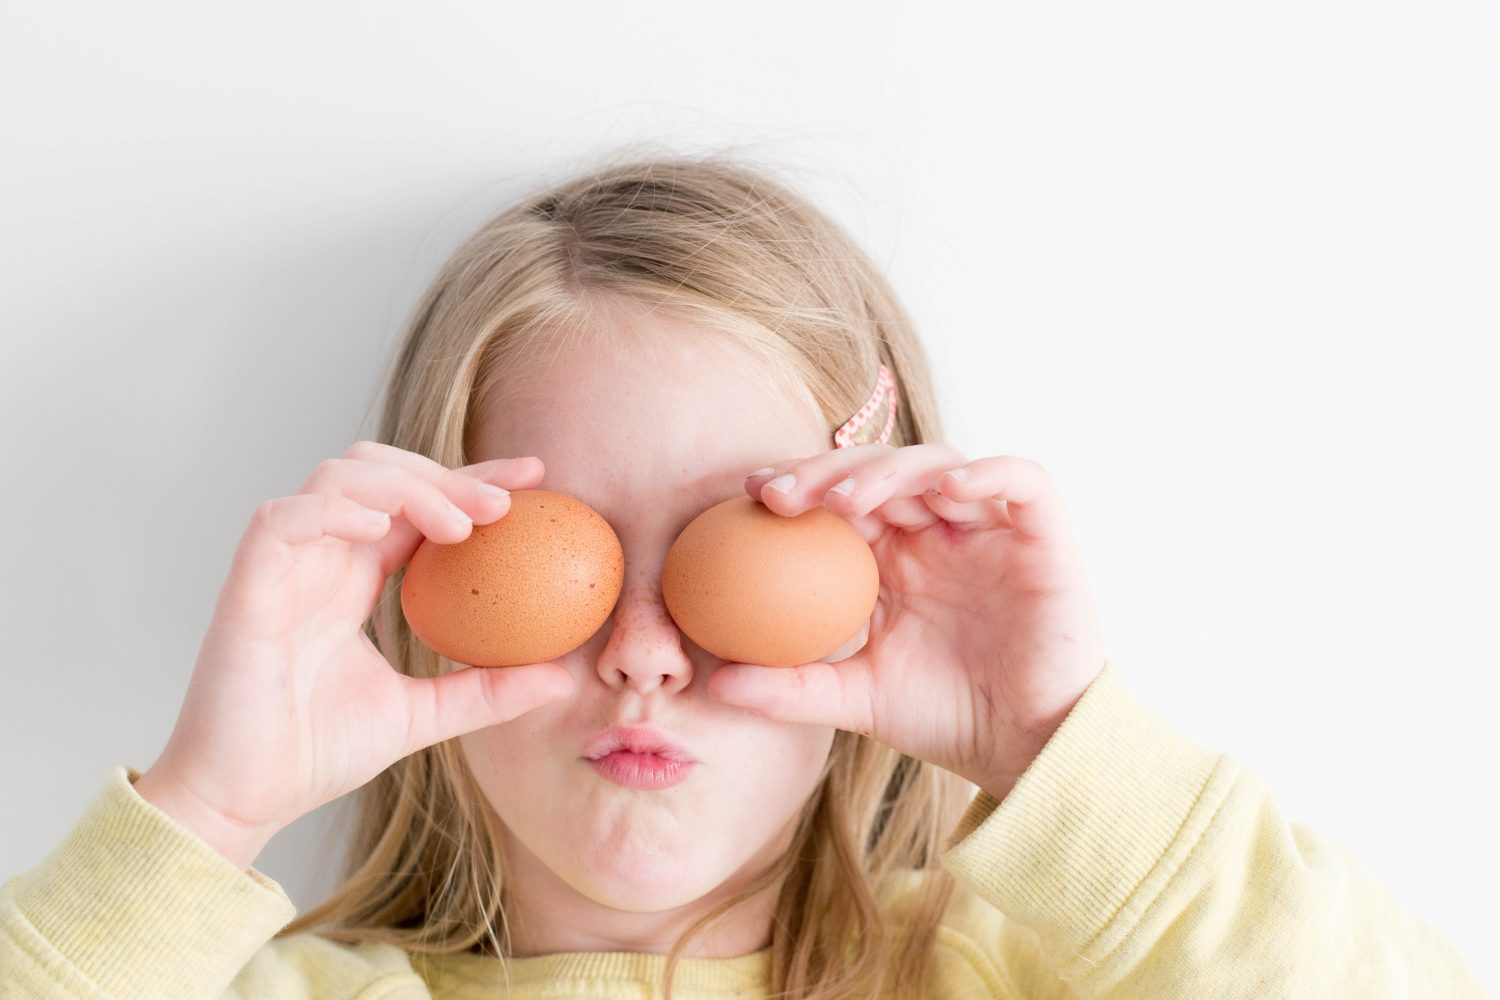 5 quick ways to tell if an egg is bad